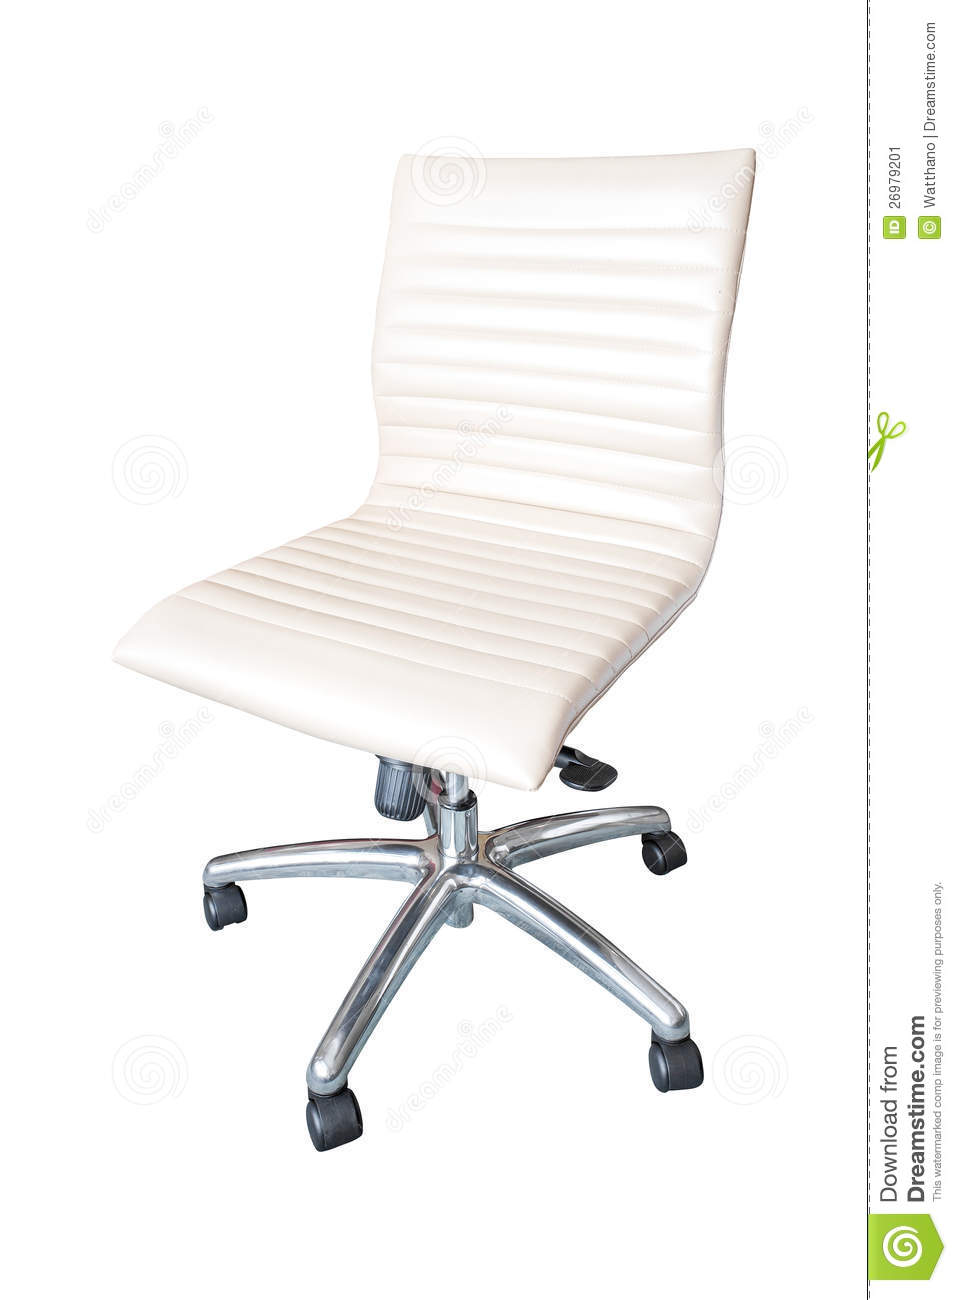 office chair white leather. background chair isolated leather office white